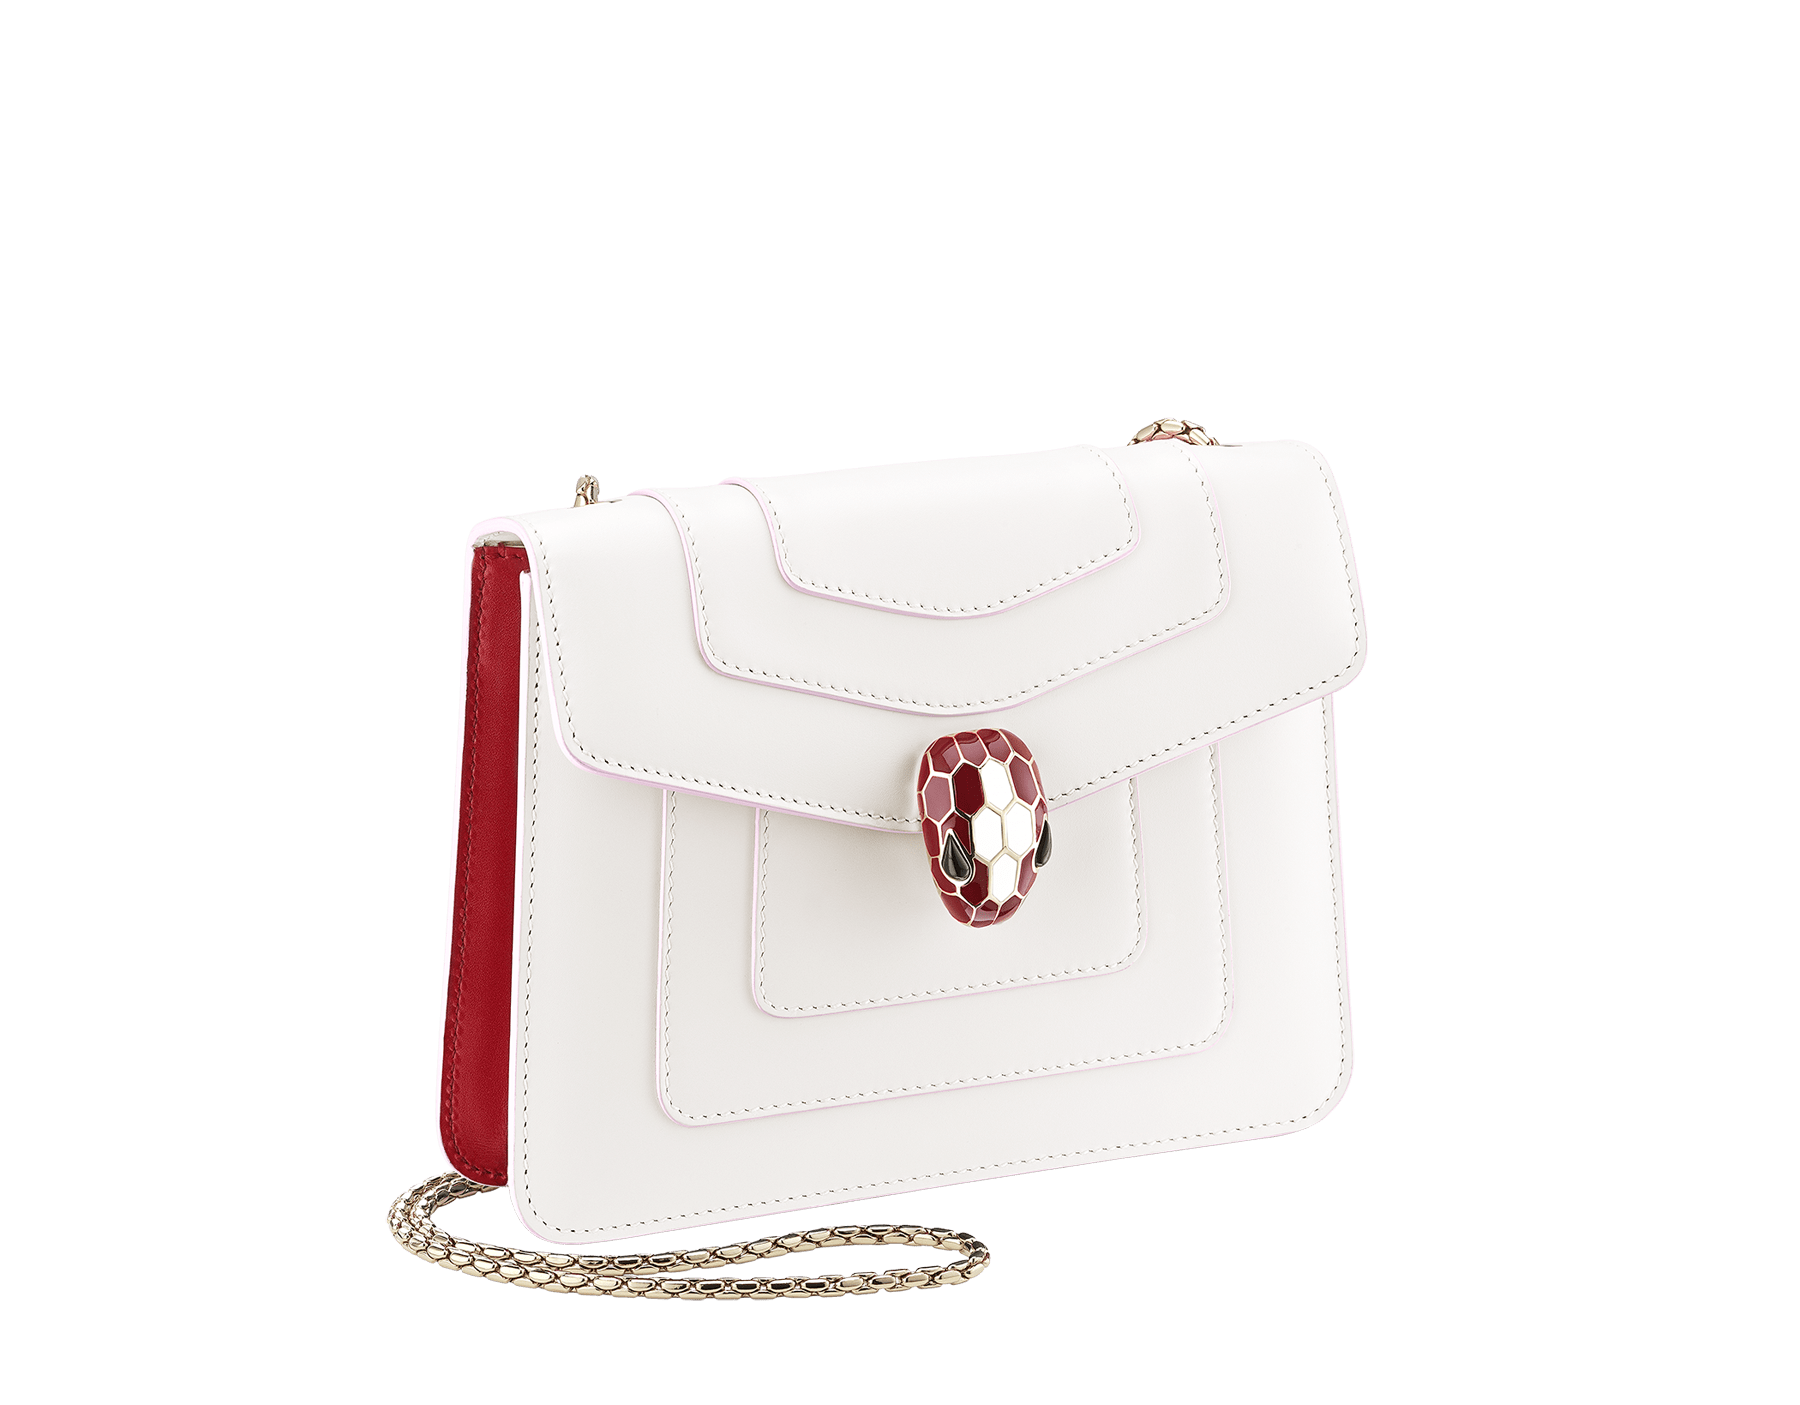 """Serpenti Forever"" crossbody bag in white agate calf leather body and ruby red calf leather sides. Iconic snakehead closure in light gold plated brass enriched with ruby red and white agate enamel and black onyx eyes. 289198 image 2"